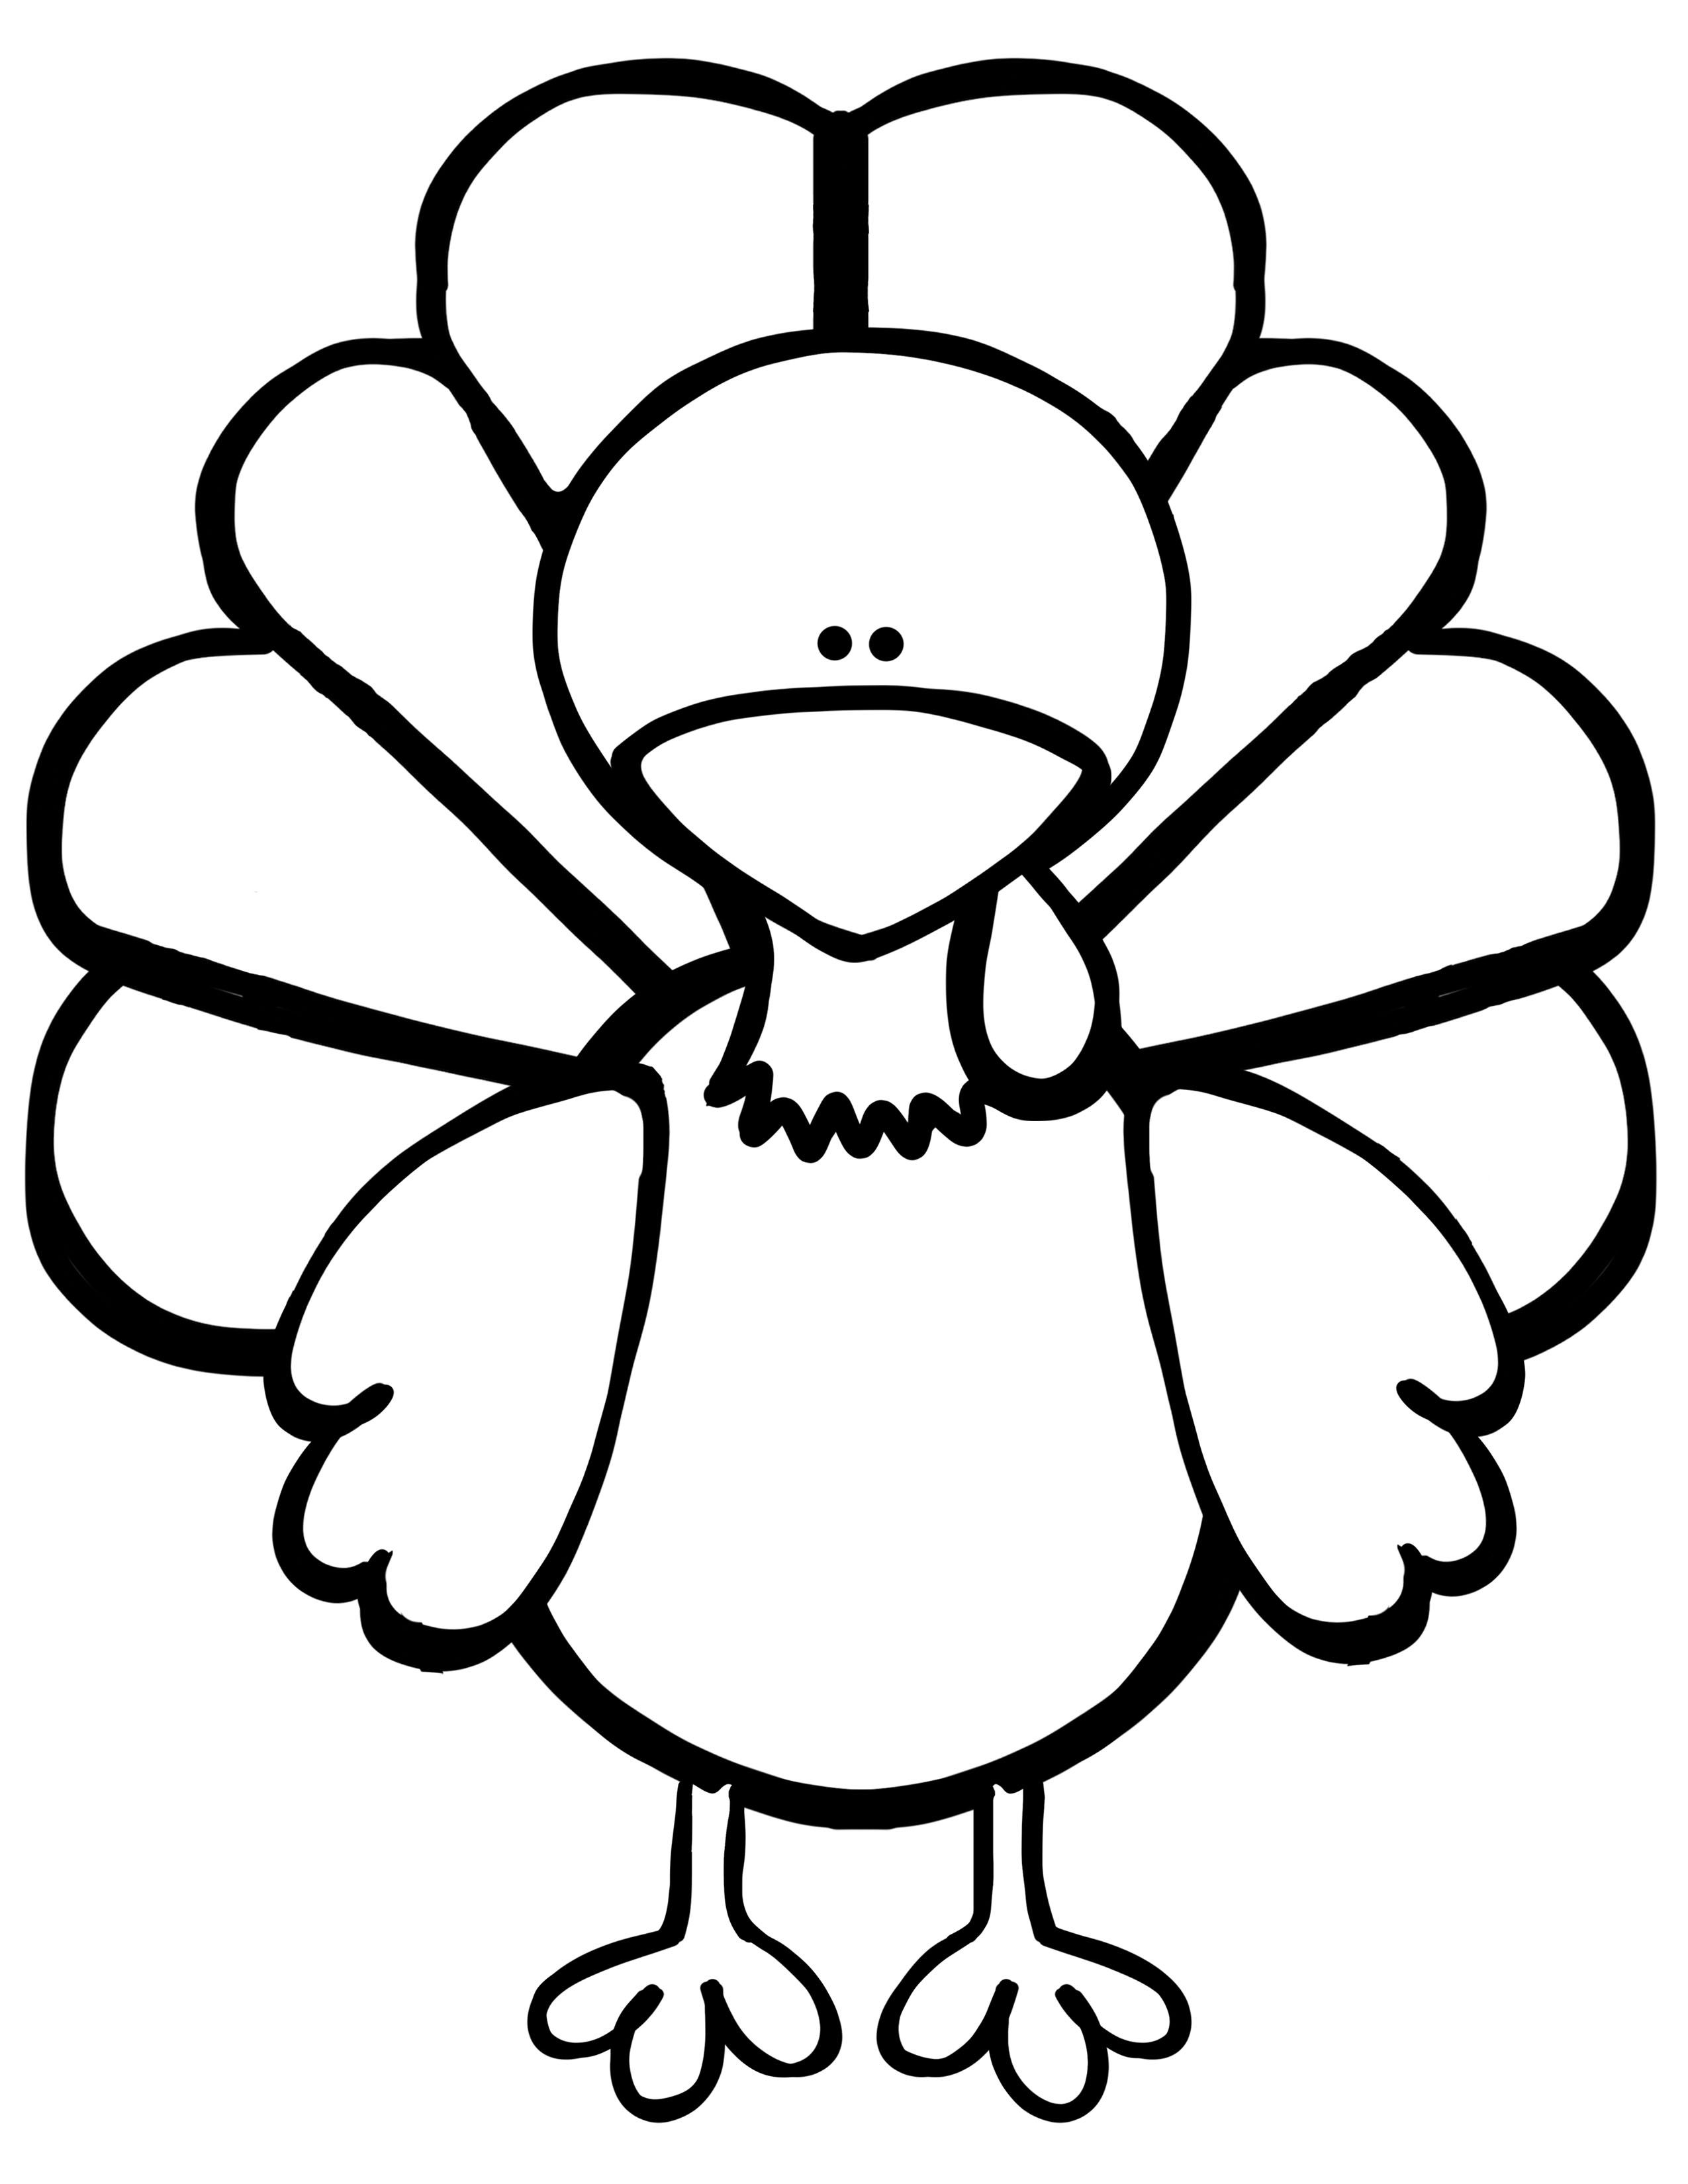 turkey outline turkey drawing outline at getdrawings free download turkey outline